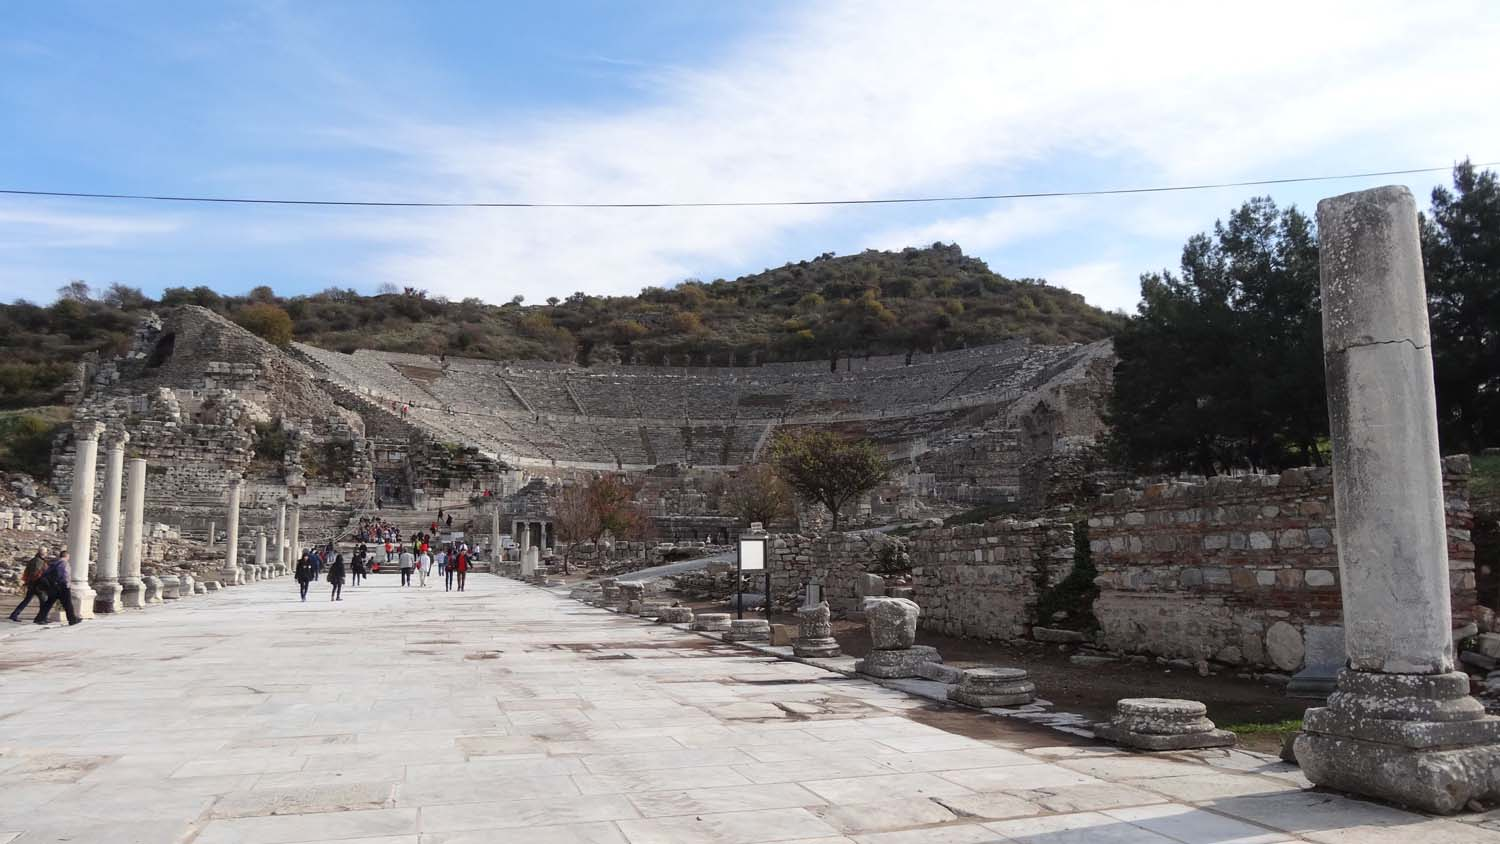 Roman theatre seating 25,000 in Ephesus